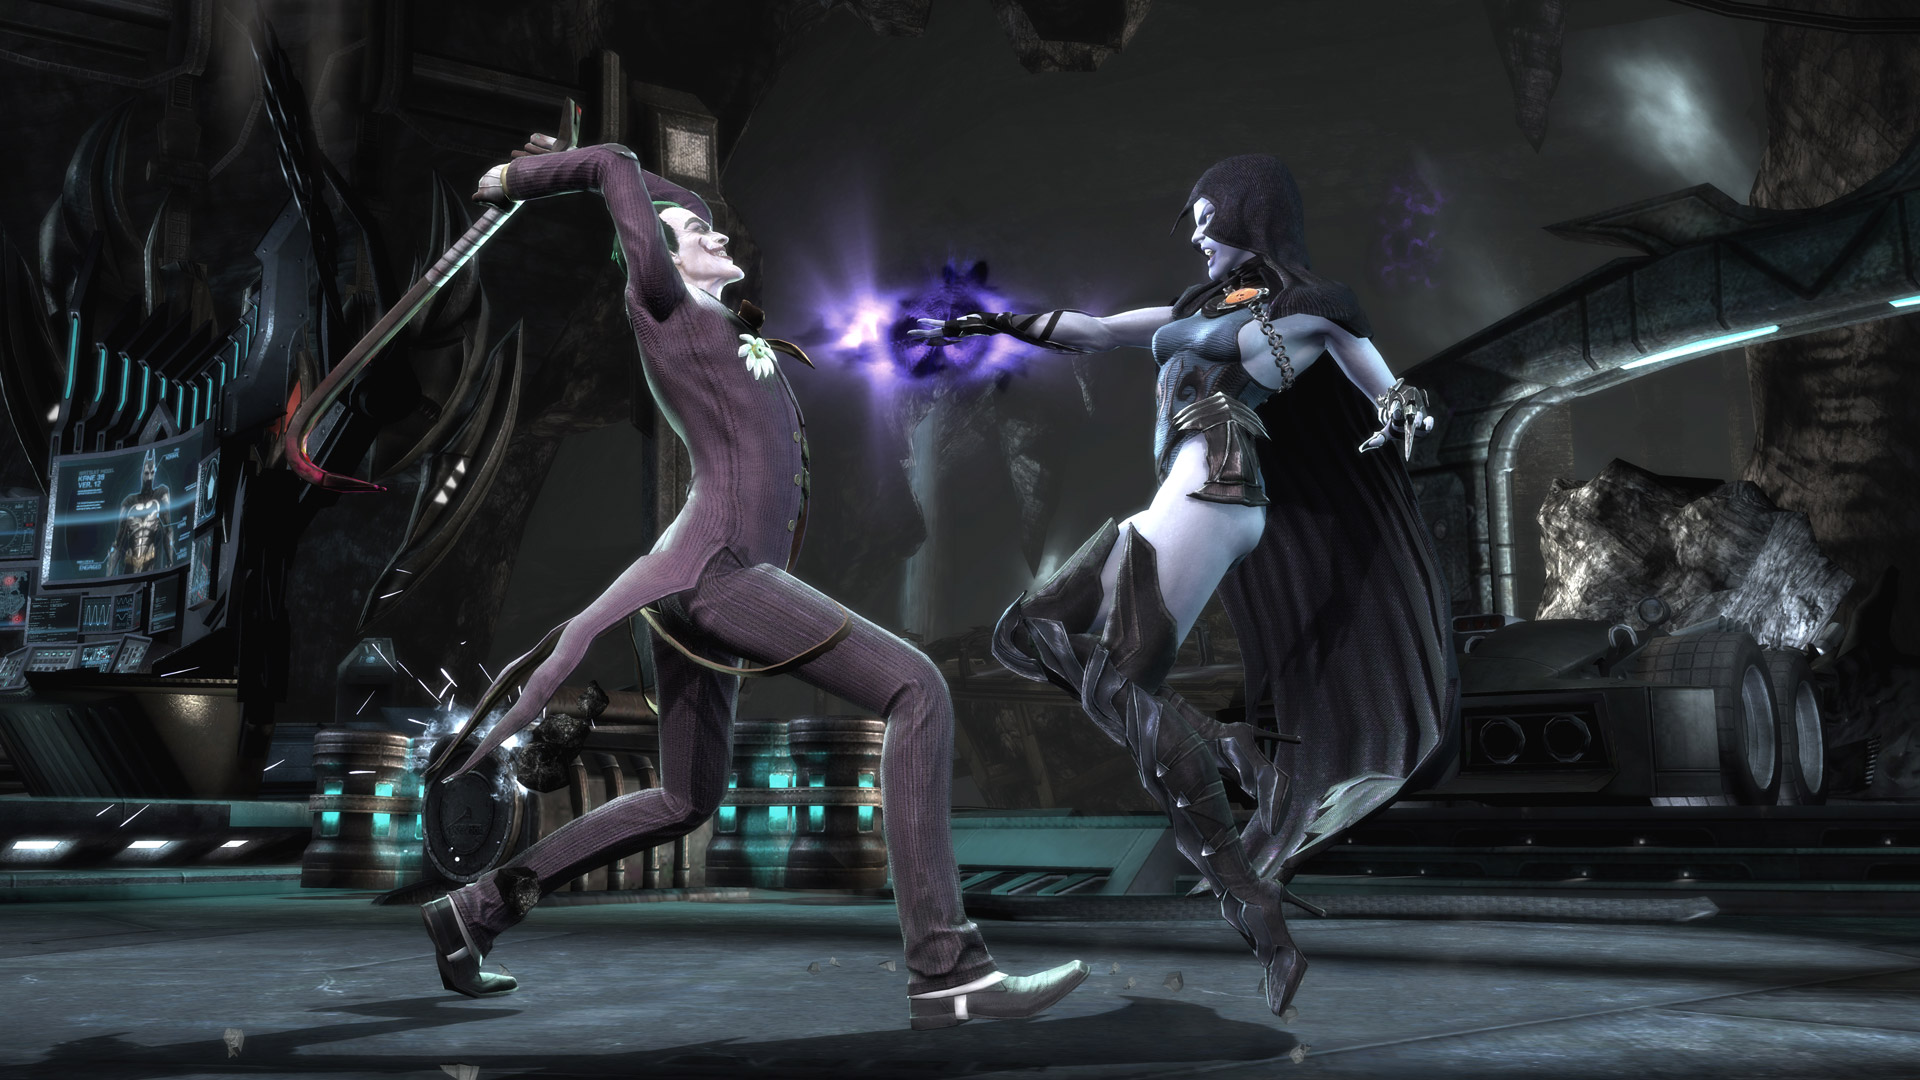 The fundamental attraction of  Injustice  is facing off a plethora of DC Comics characters against each other that you don't often see in the comics, like this battle between the Joker and Raven.